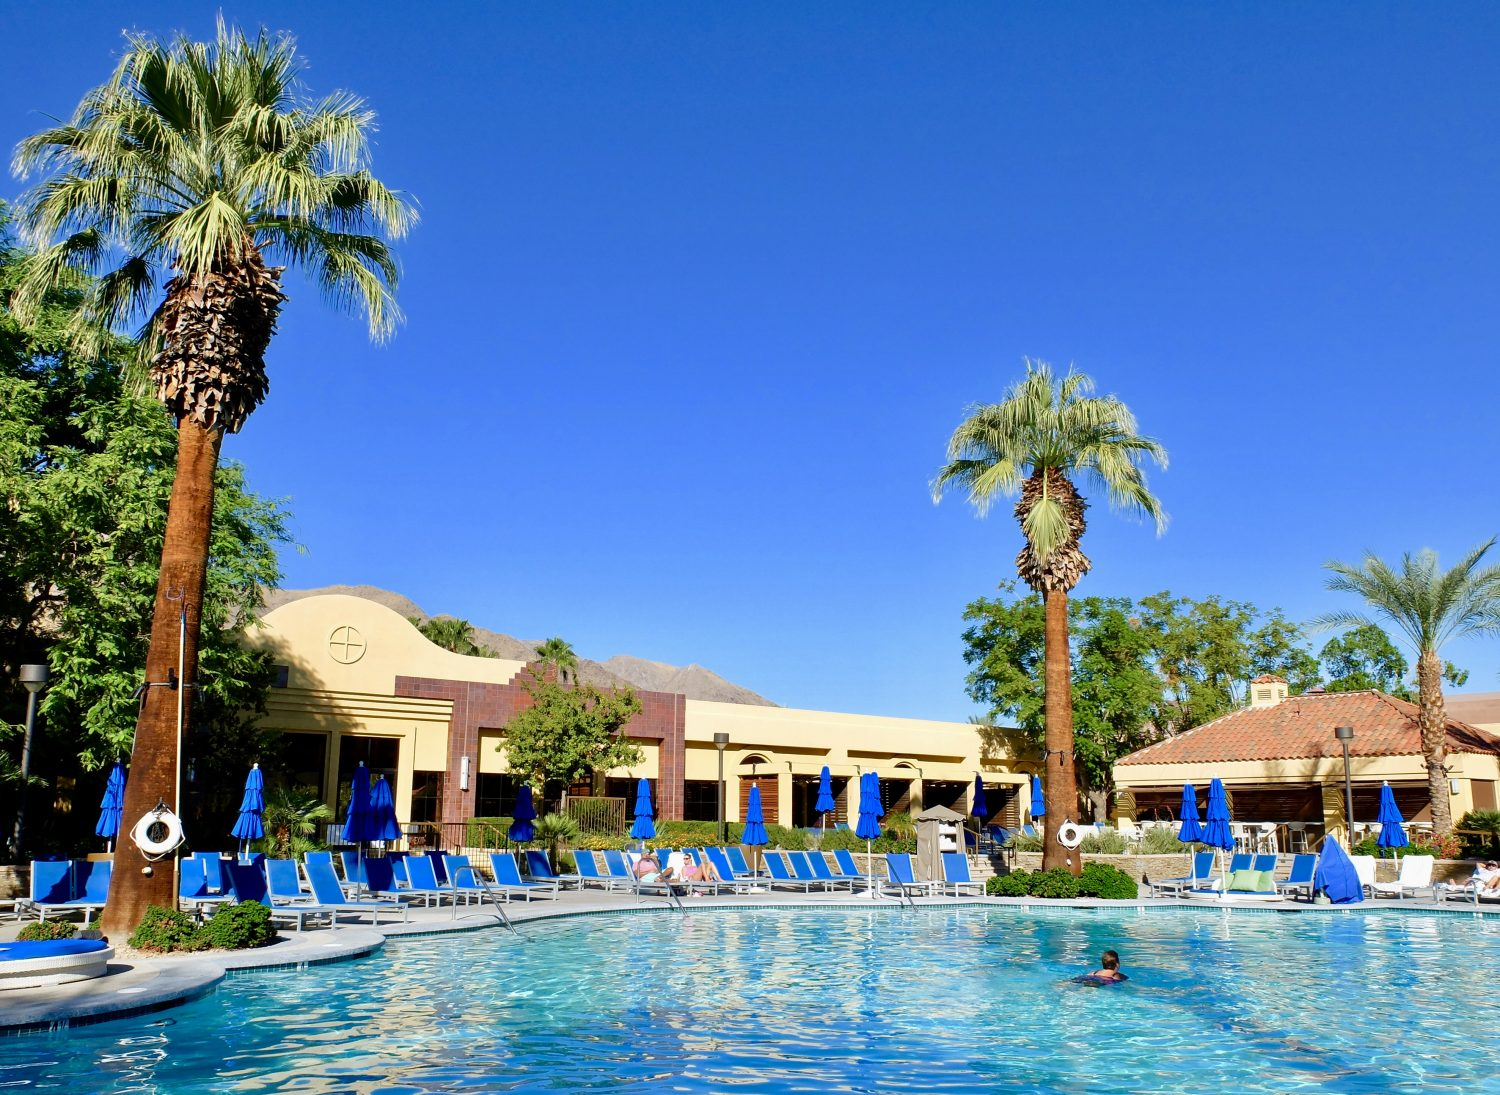 The pool at the Renaissance Palm Springs Hotel, California